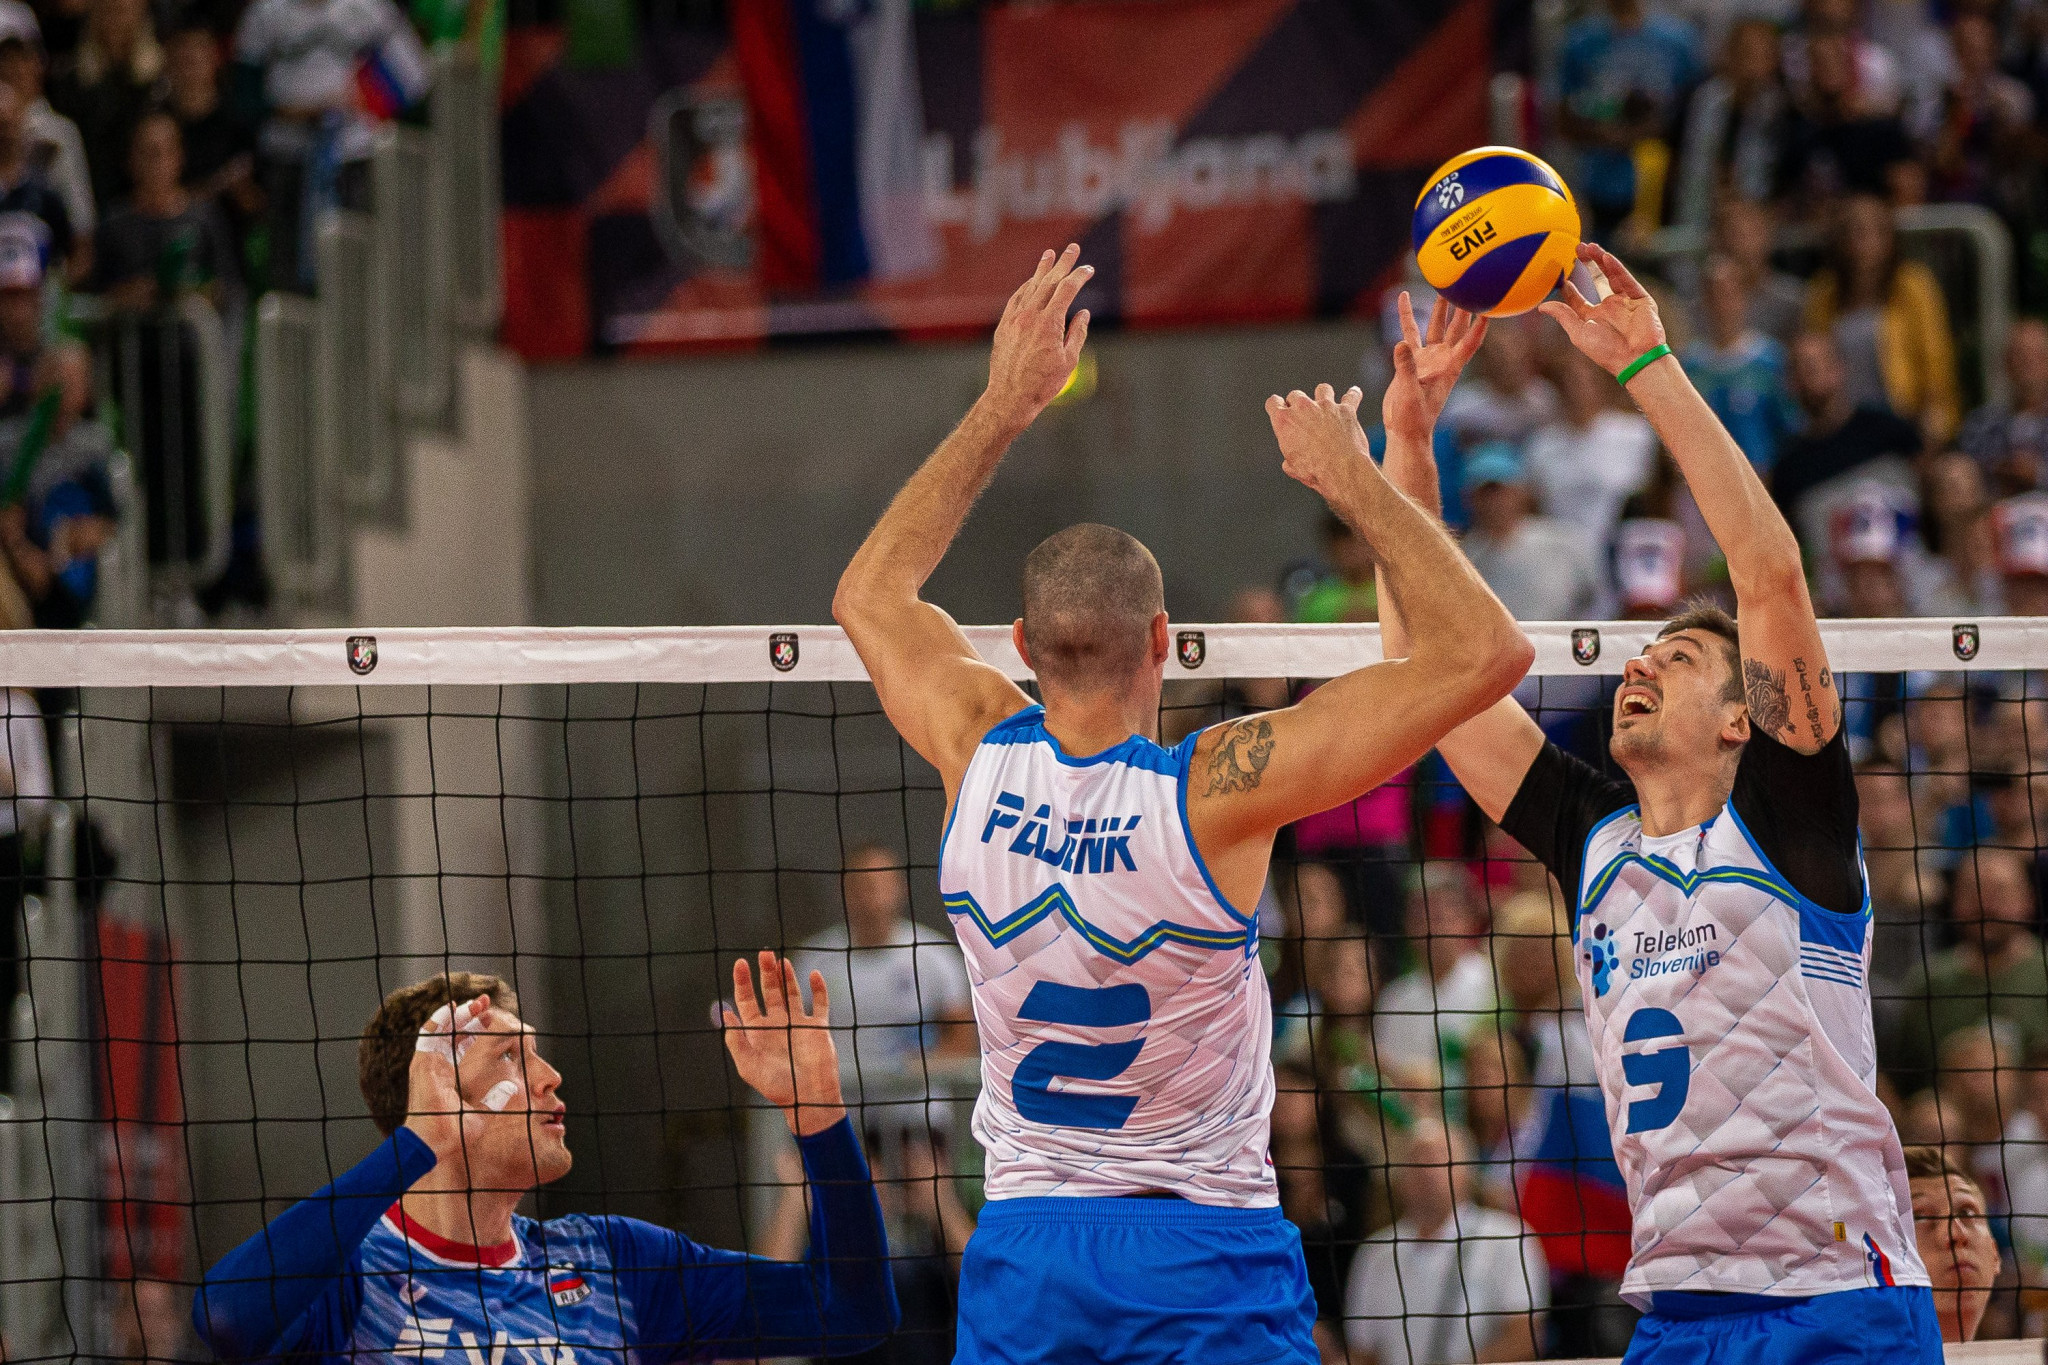 Slovenia beat defending champions Russia to reach semi-finals at Men's European Volleyball Championship